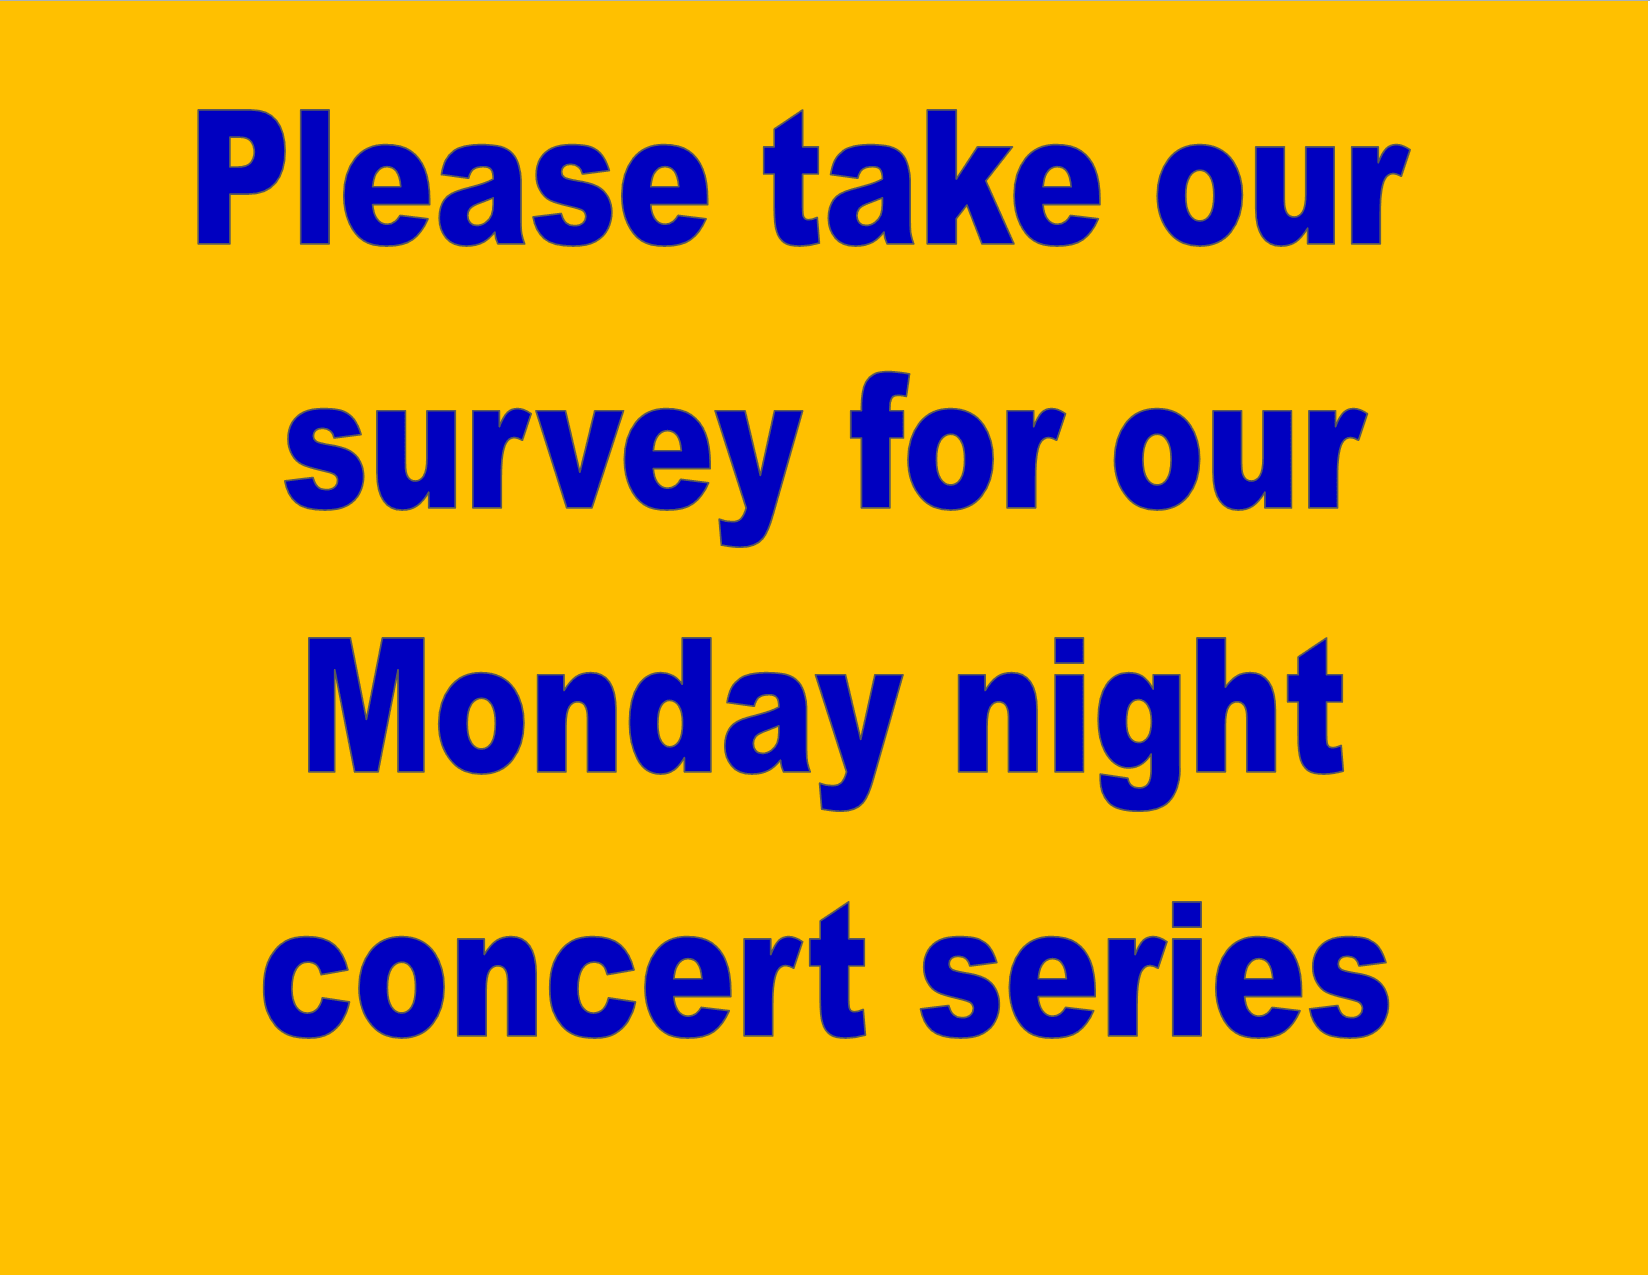 Monday survey